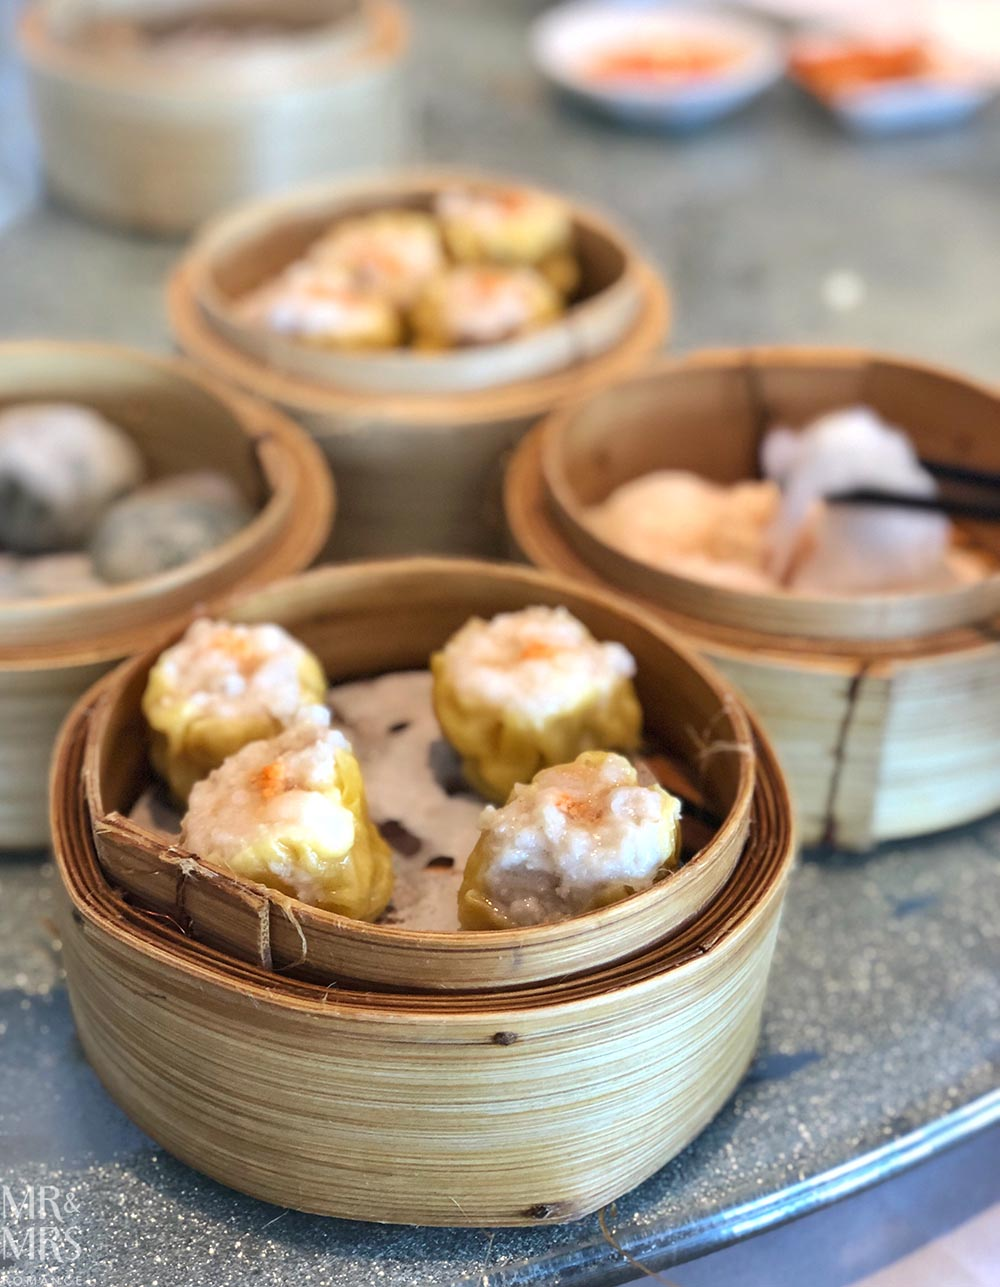 Yum cha at the Sydney Fish Markets